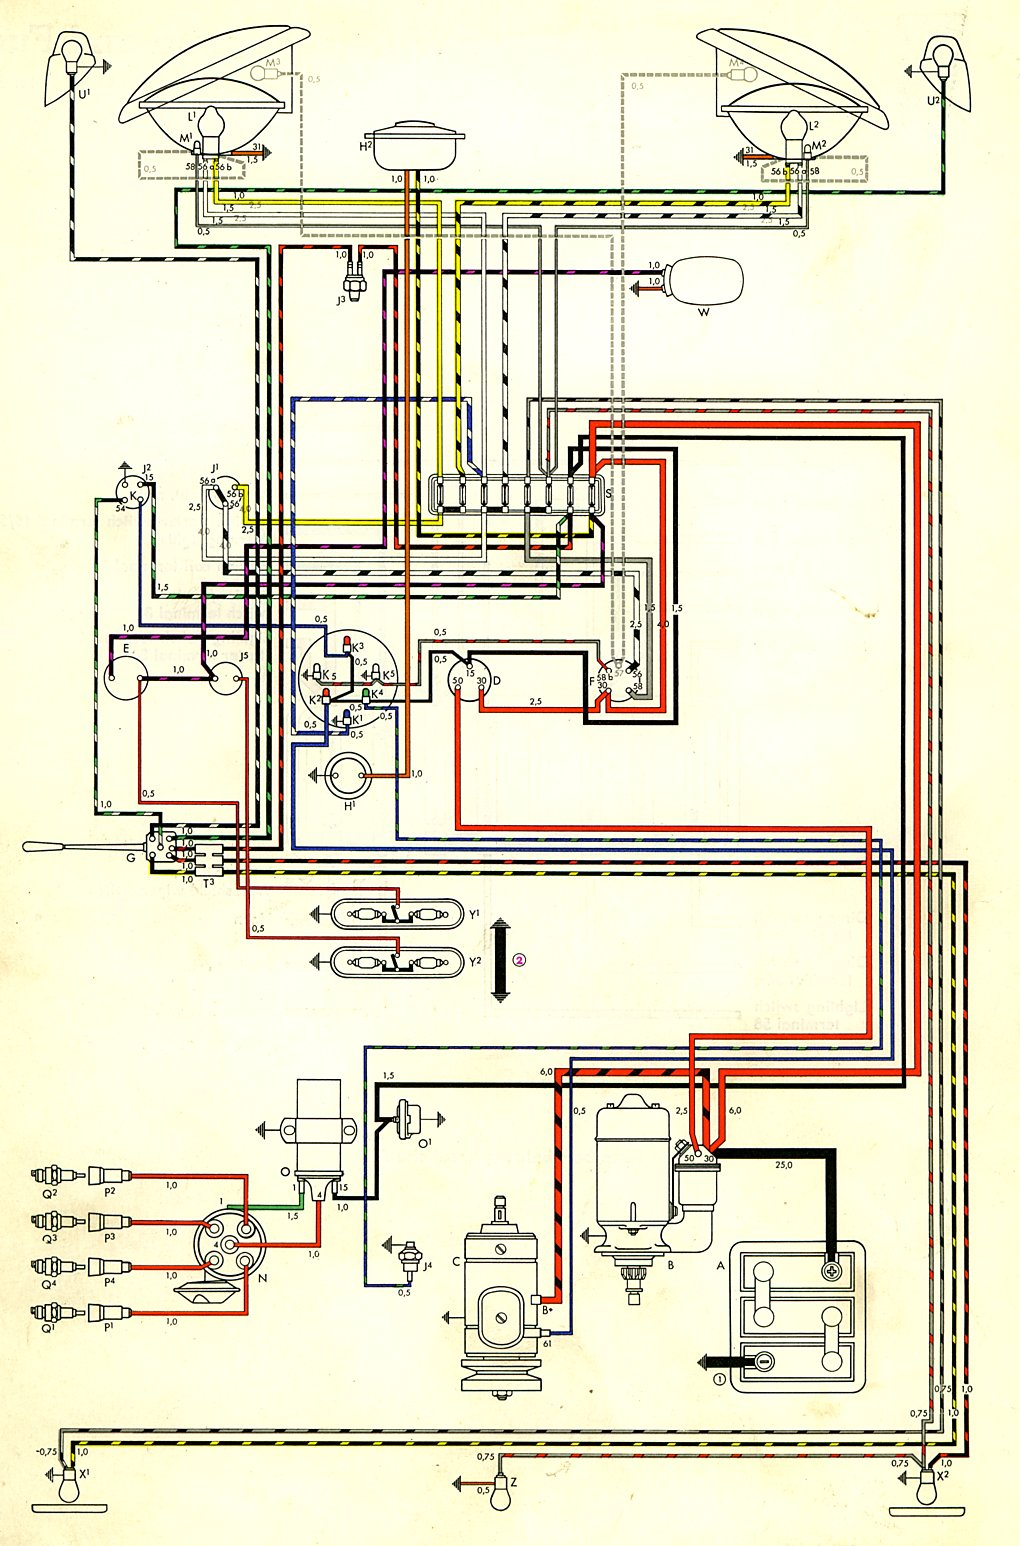 78 vw bus engine diagram vw type 4 engine wiring diagram 67 vw bus wiring diagram [ 1020 x 1546 Pixel ]